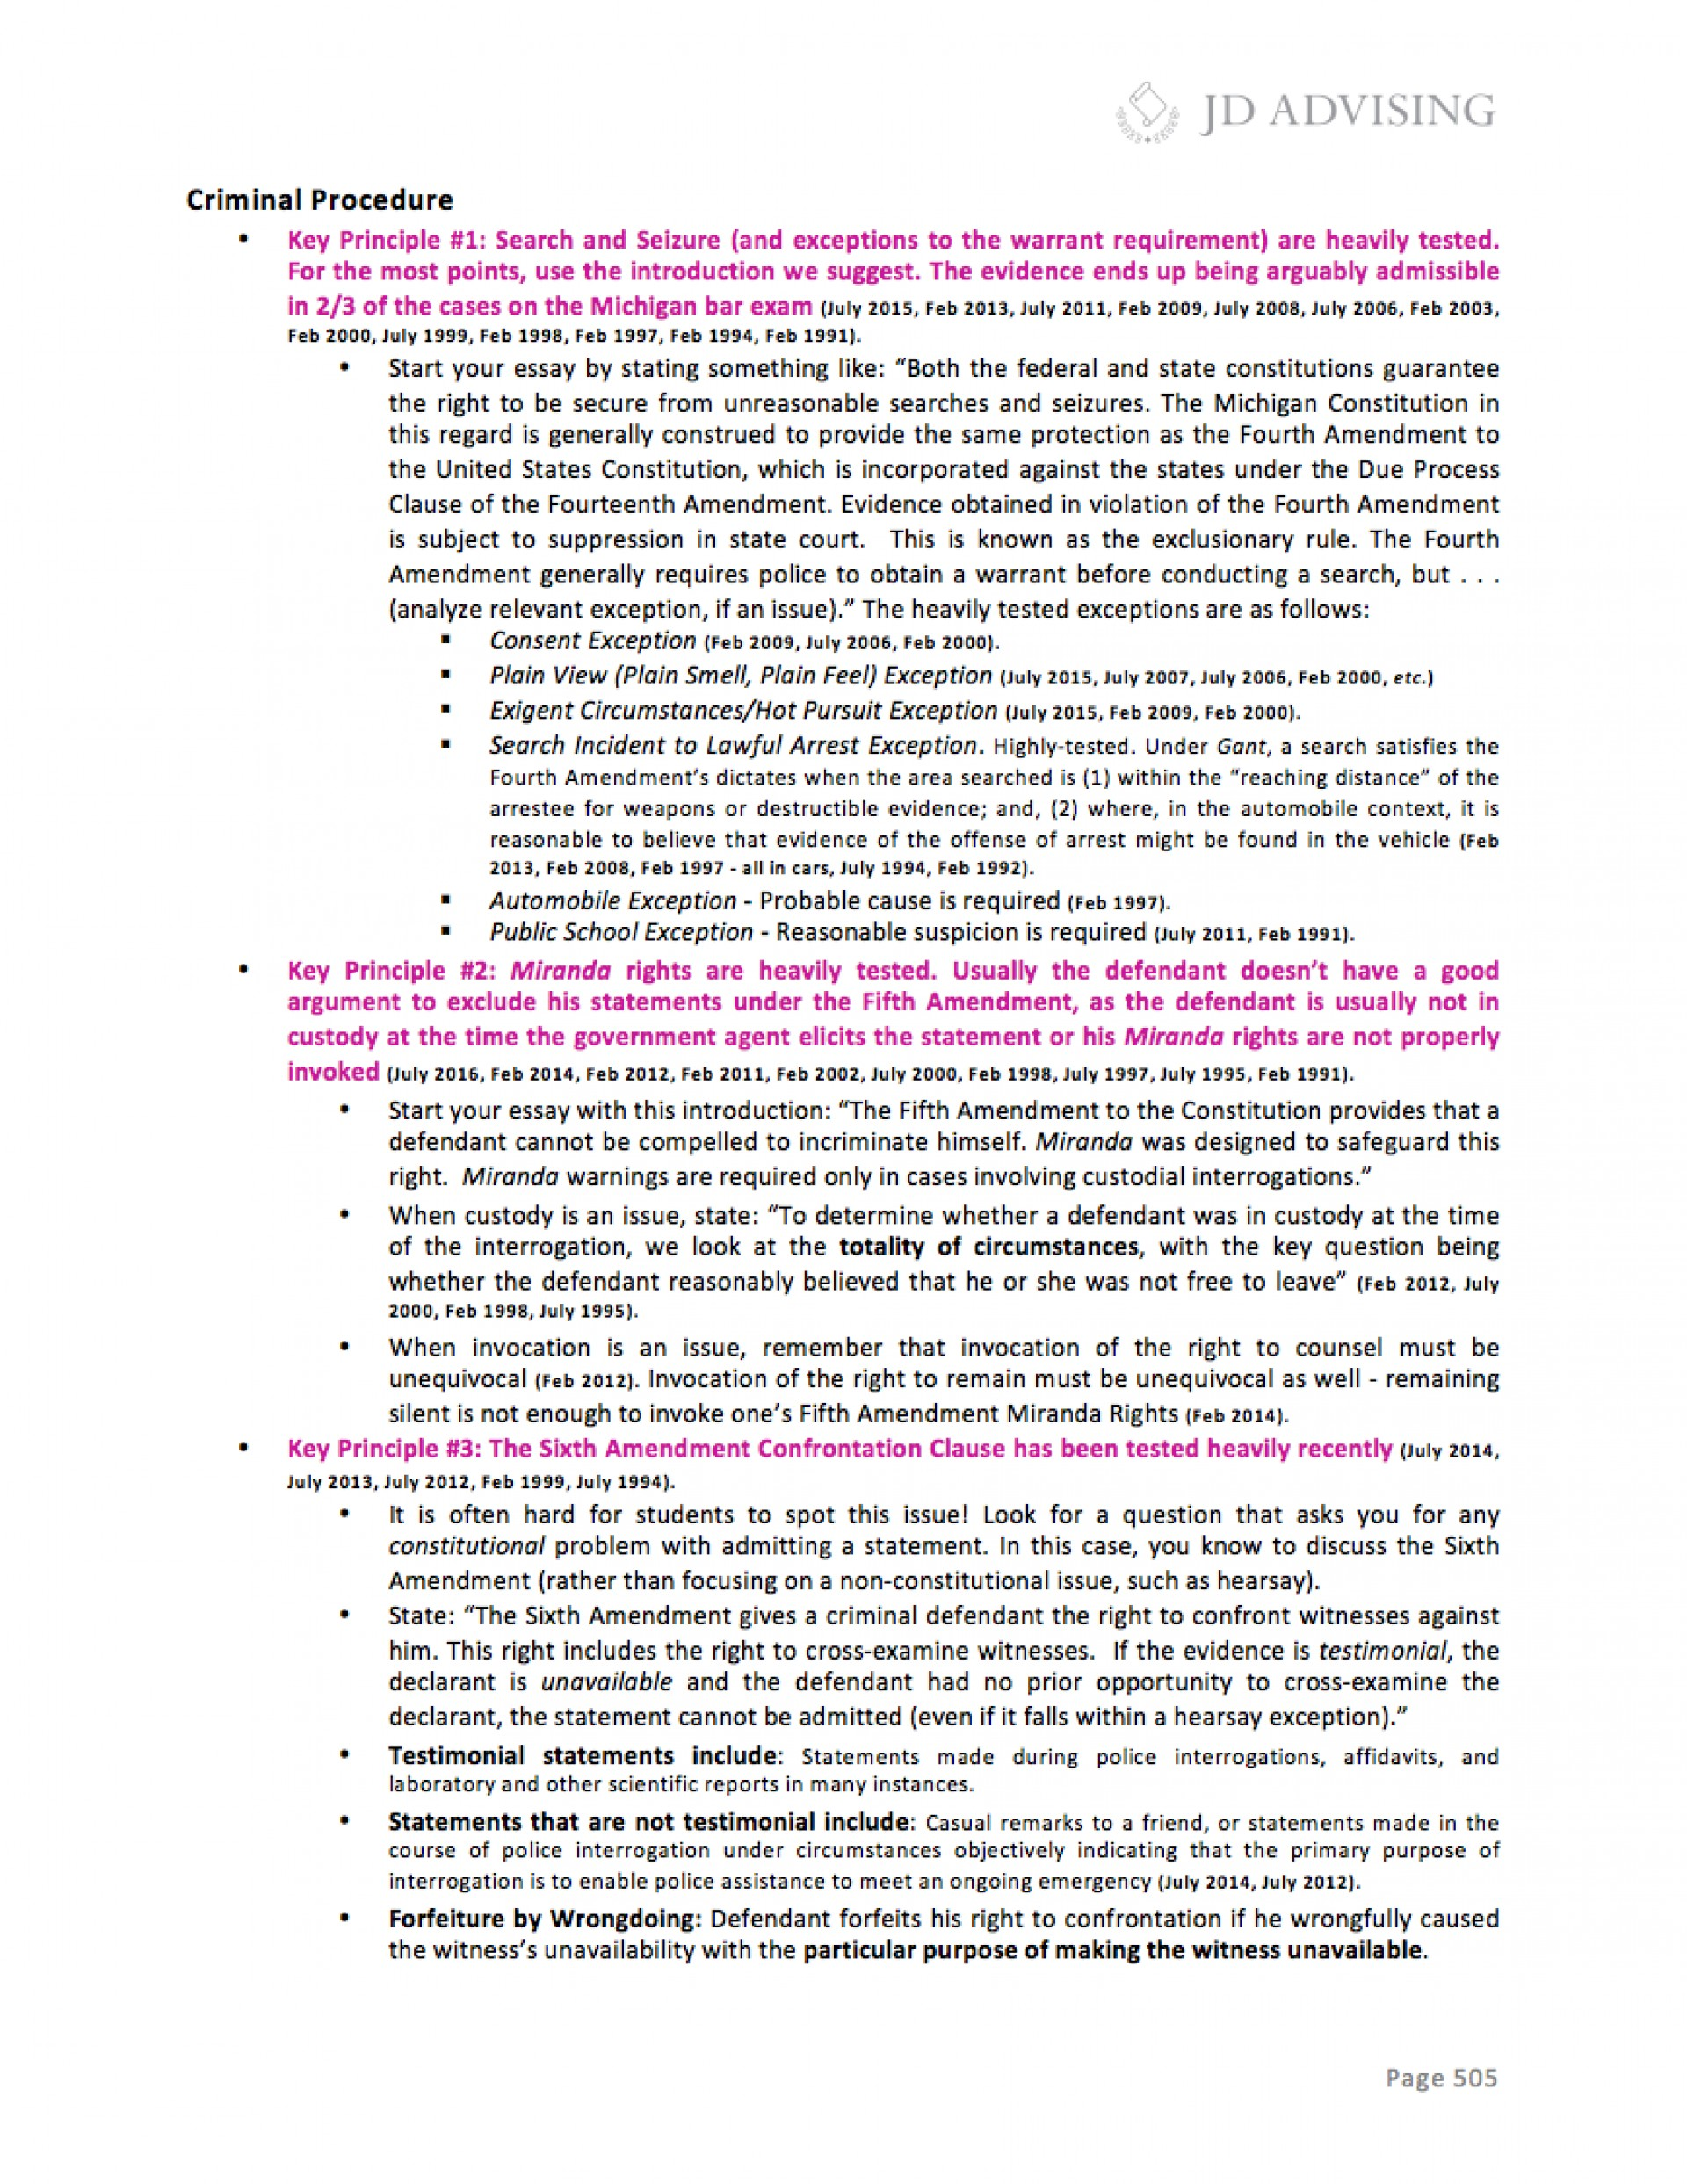 006 Essay Example Screen Shot At Pm Bar Incredible Essays Baressays Coupon Code Baressays.com Ny Predictions 1920